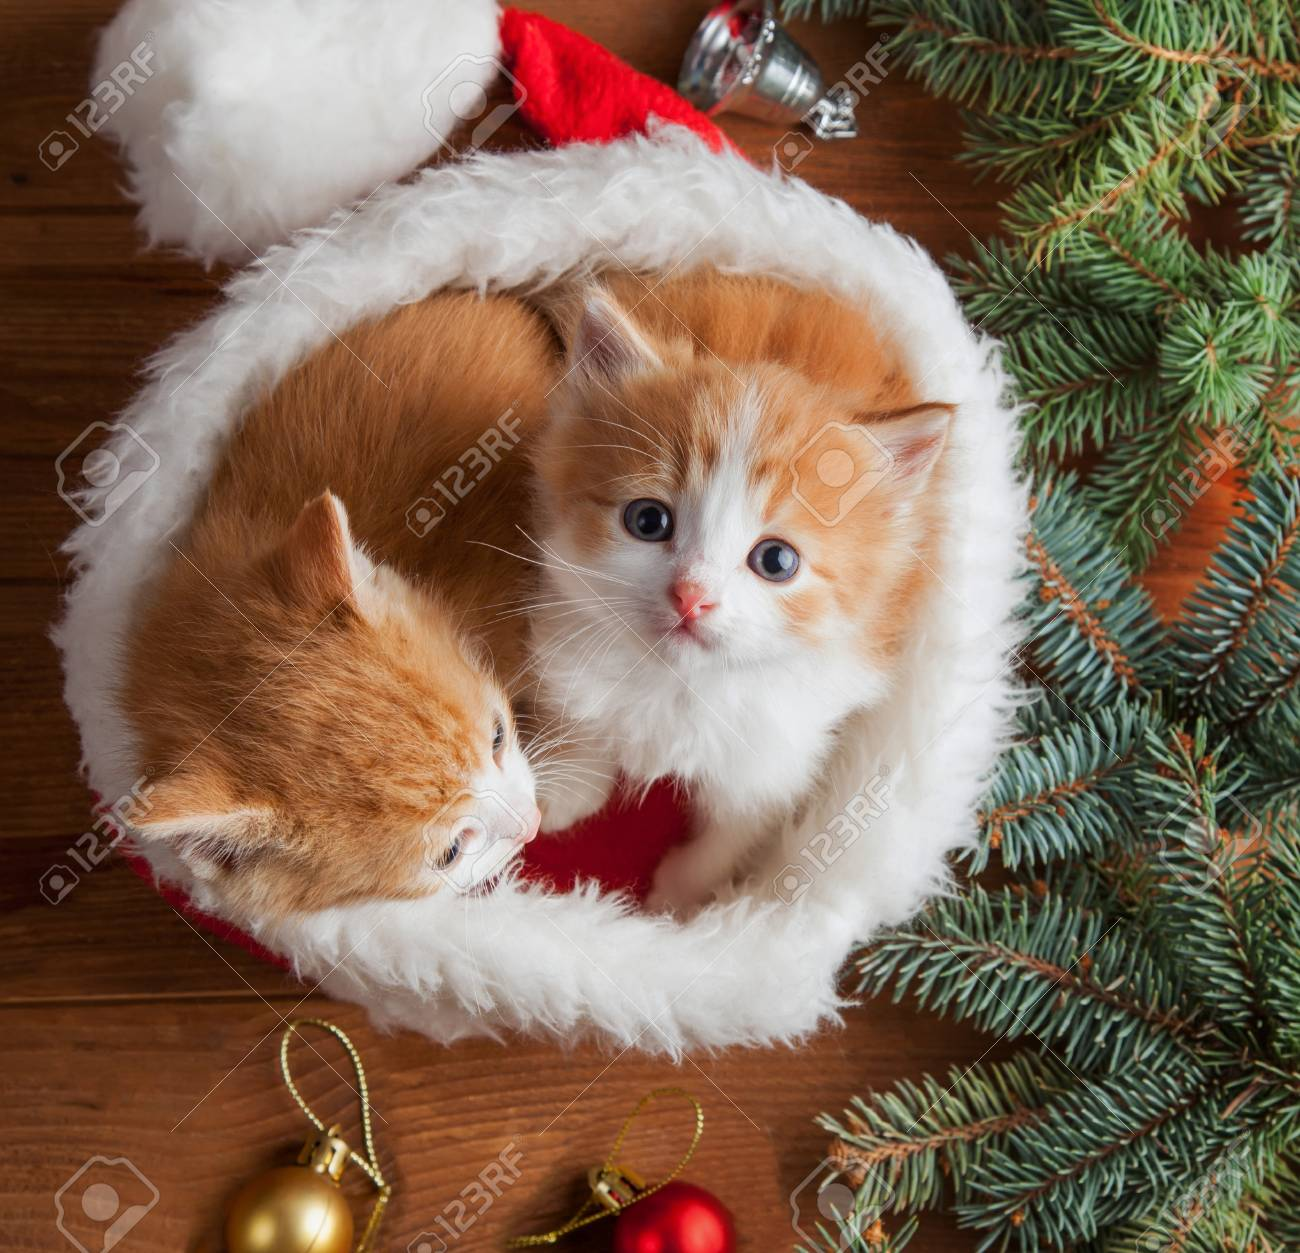 ginger kitten in santa hat against the background of a Christmas tree - 108321559